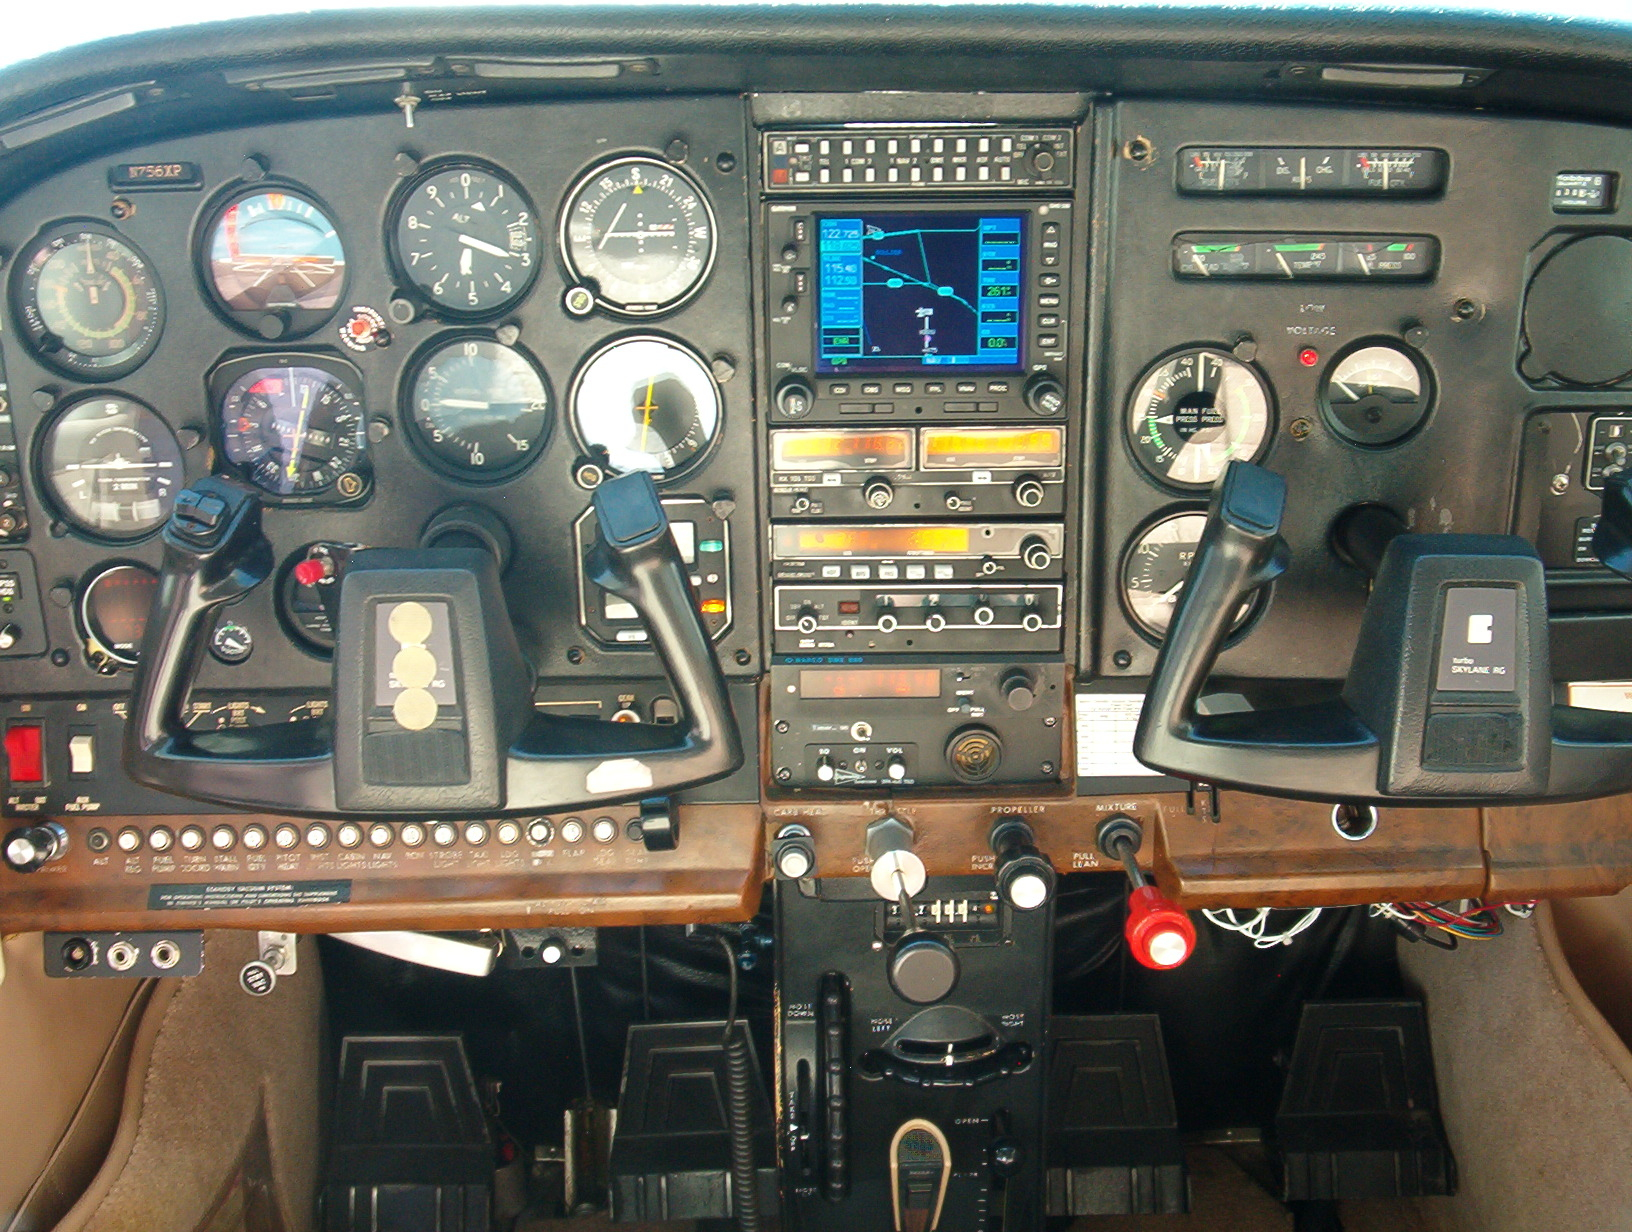 TR182 N756XP aircraft for rent at Specialty Flight Training, Inc Learn to Fly Boulder, CO